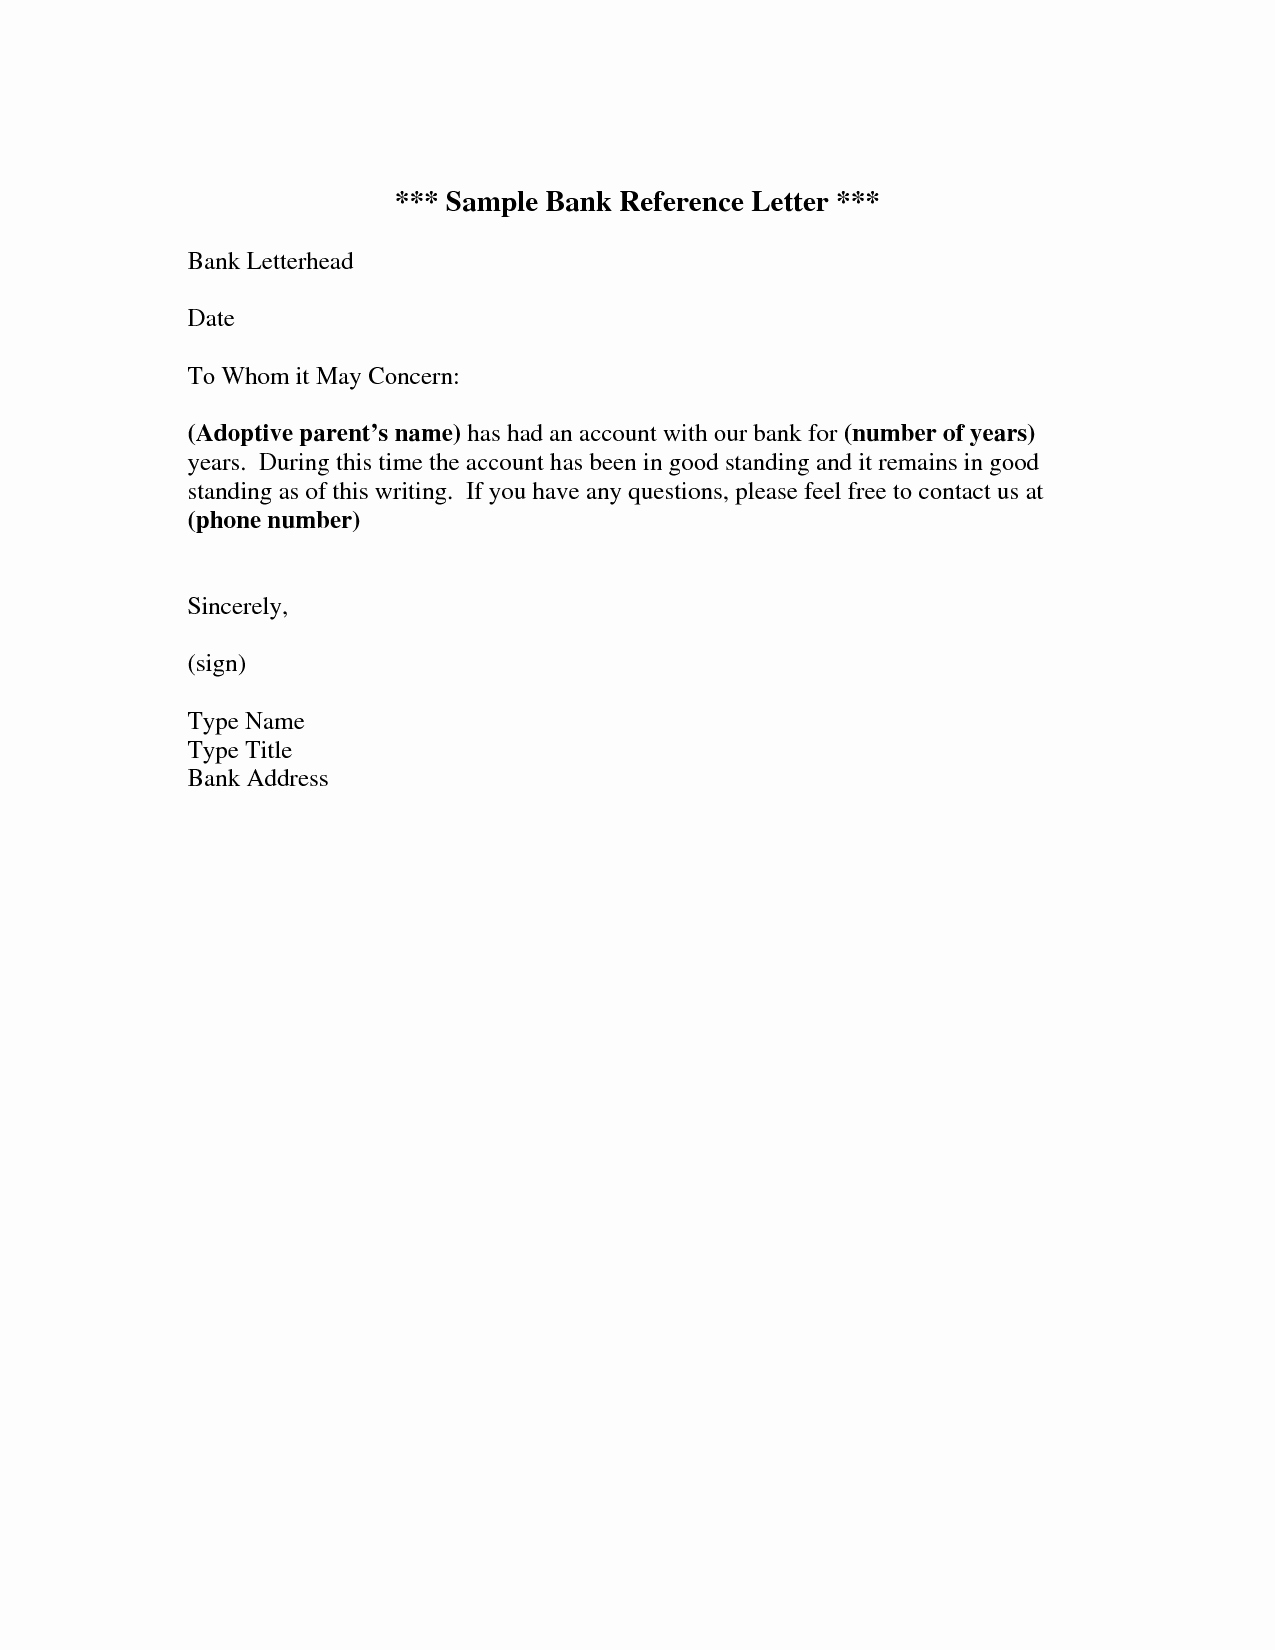 Sample Of Letter Of Reference Elegant Bank Reference Letter Example Mughals